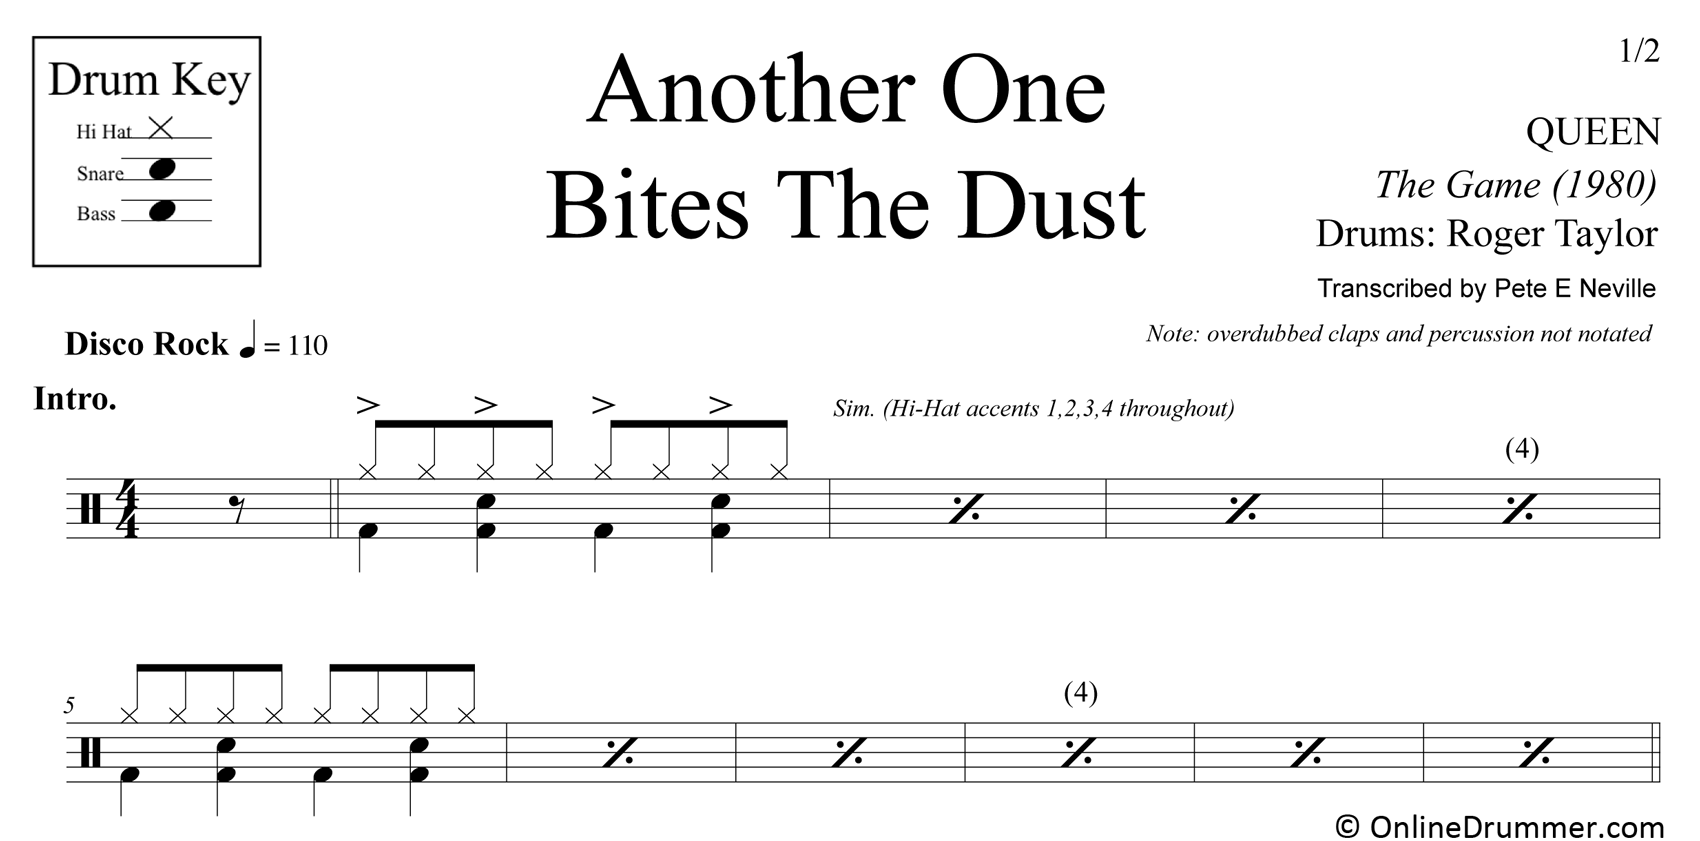 xAnother-One-Bites-The-Dust-Queen-Drum-Sheet-Music.png.pagespeed.ic.5GEWqBFdJZ.jpg